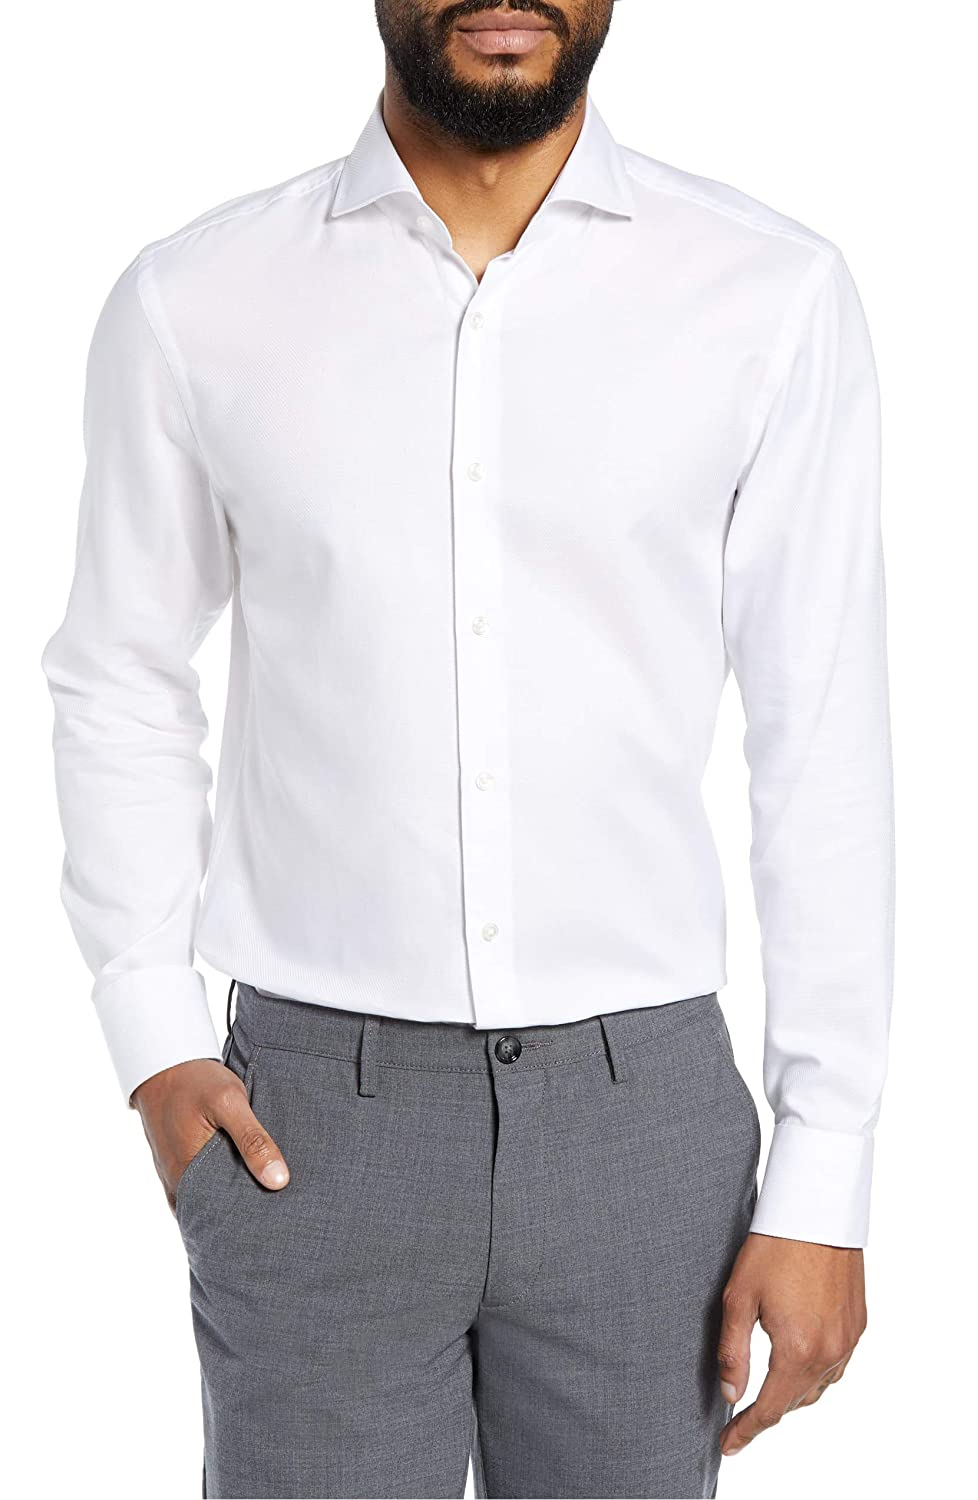 Size 16.0 Hugo Boss Mens Mark Sharp Fit Dress Shirt White White, 16 x 32//33